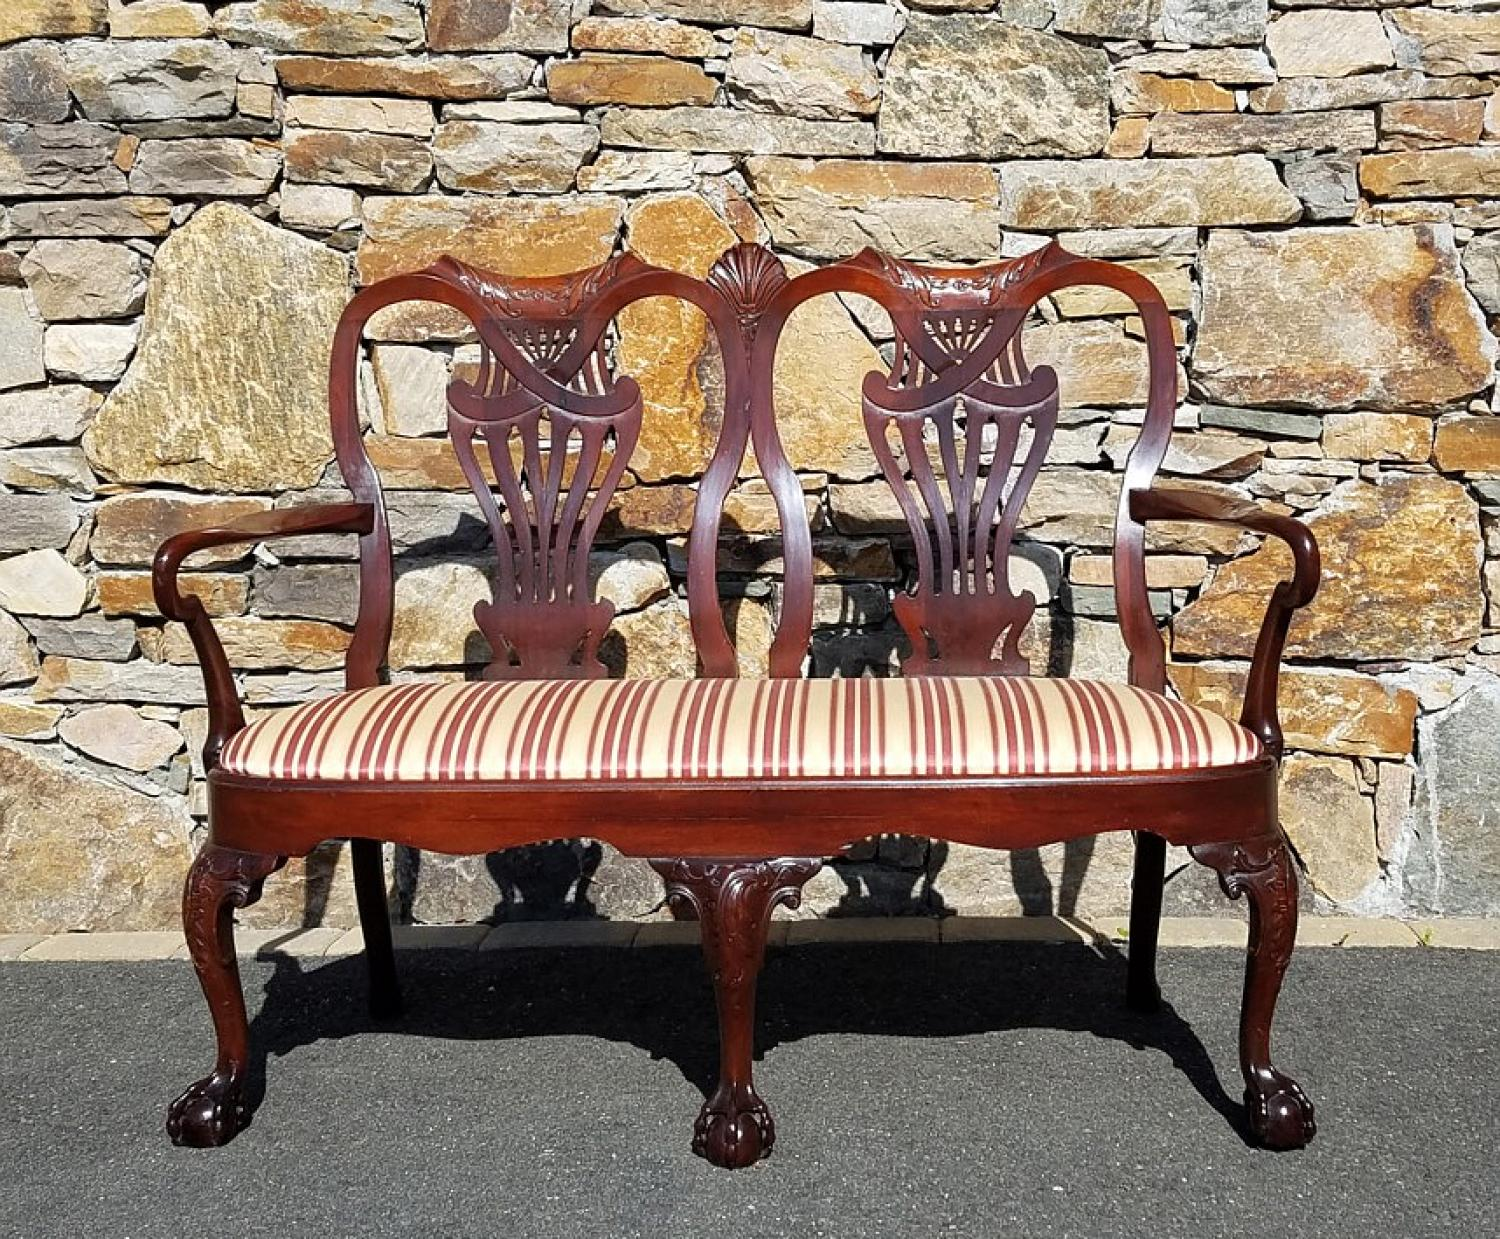 Centennial Chippendale mahogany double settee